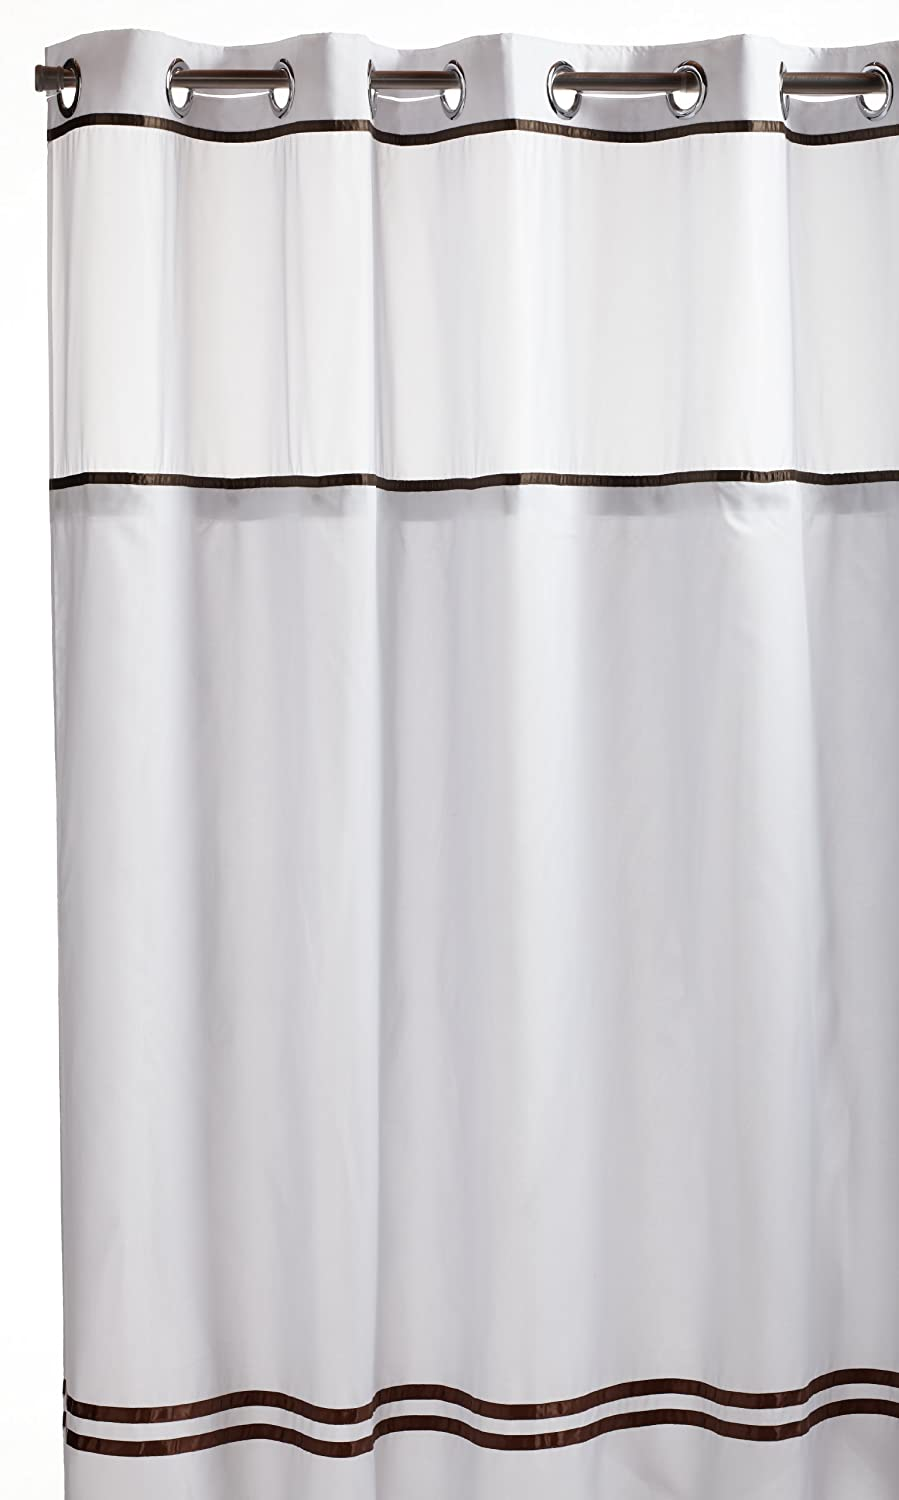 Amazon.com: Hookless RBH40ES305 Fabric Shower Curtain with Built ...